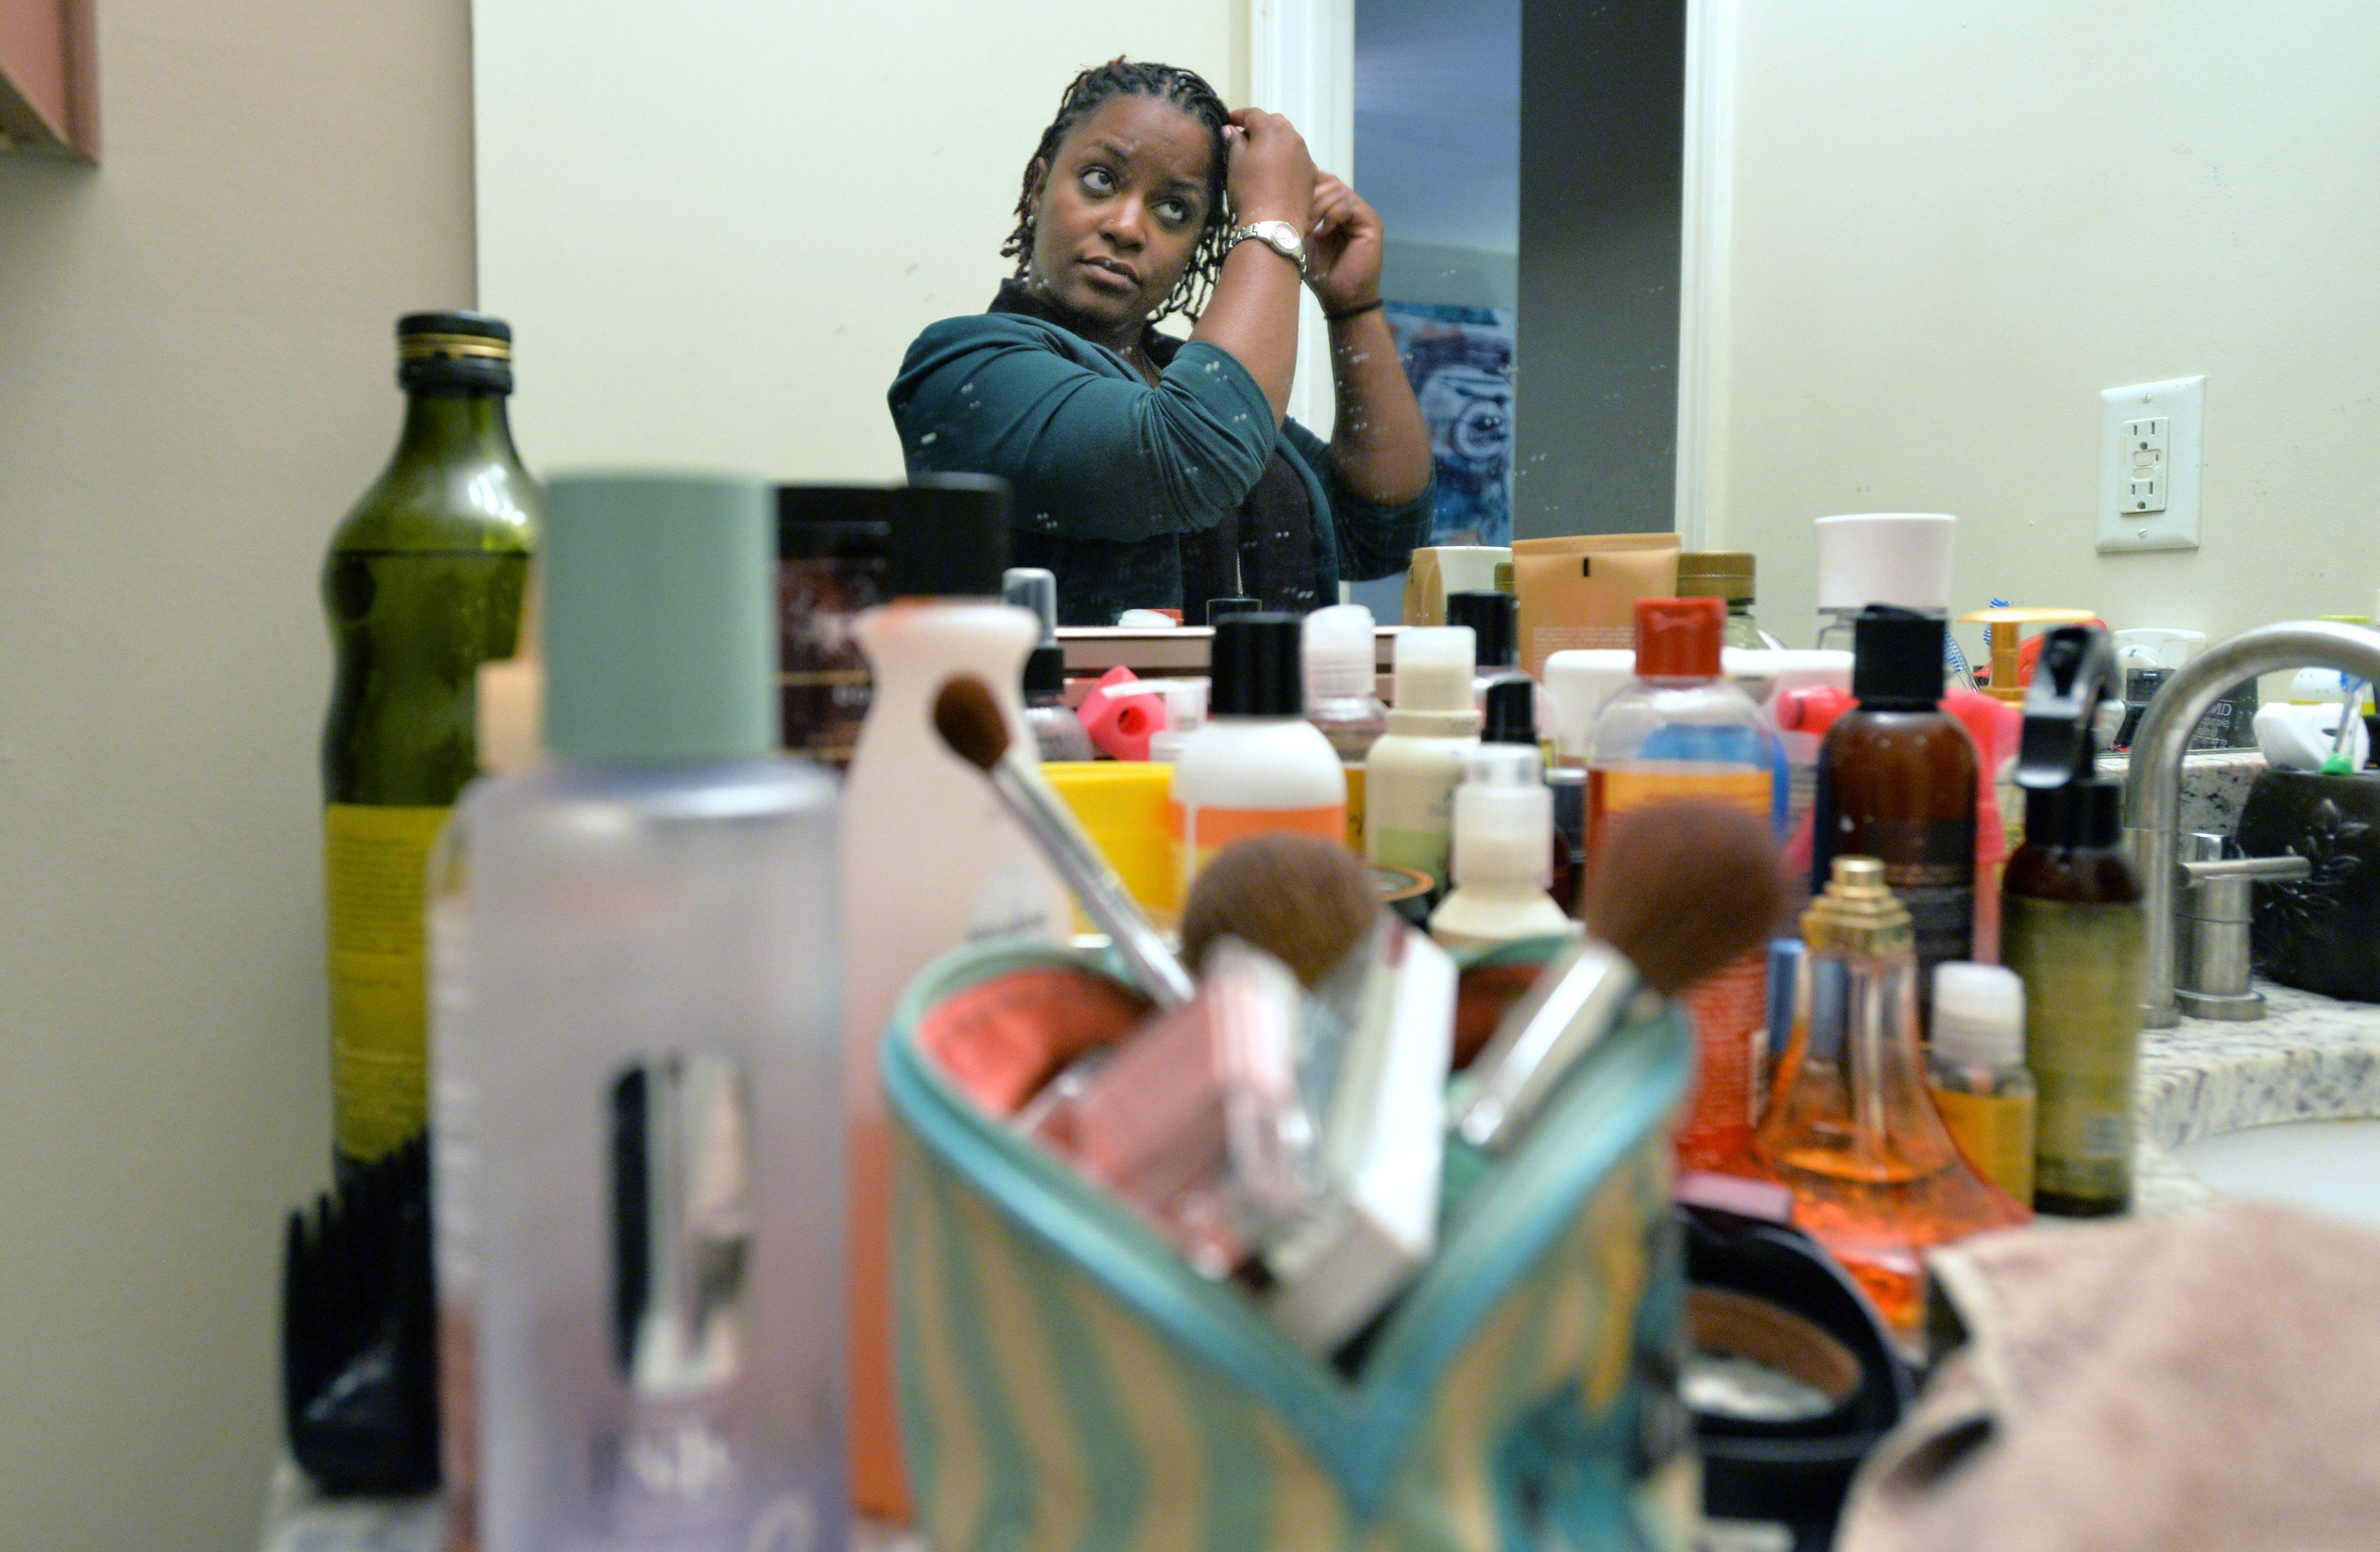 Former National Guard soldier Jasmine Jacobs uses many hair products daily at her home in Atlanta. She left the National Guard after the Army banned hair twists.